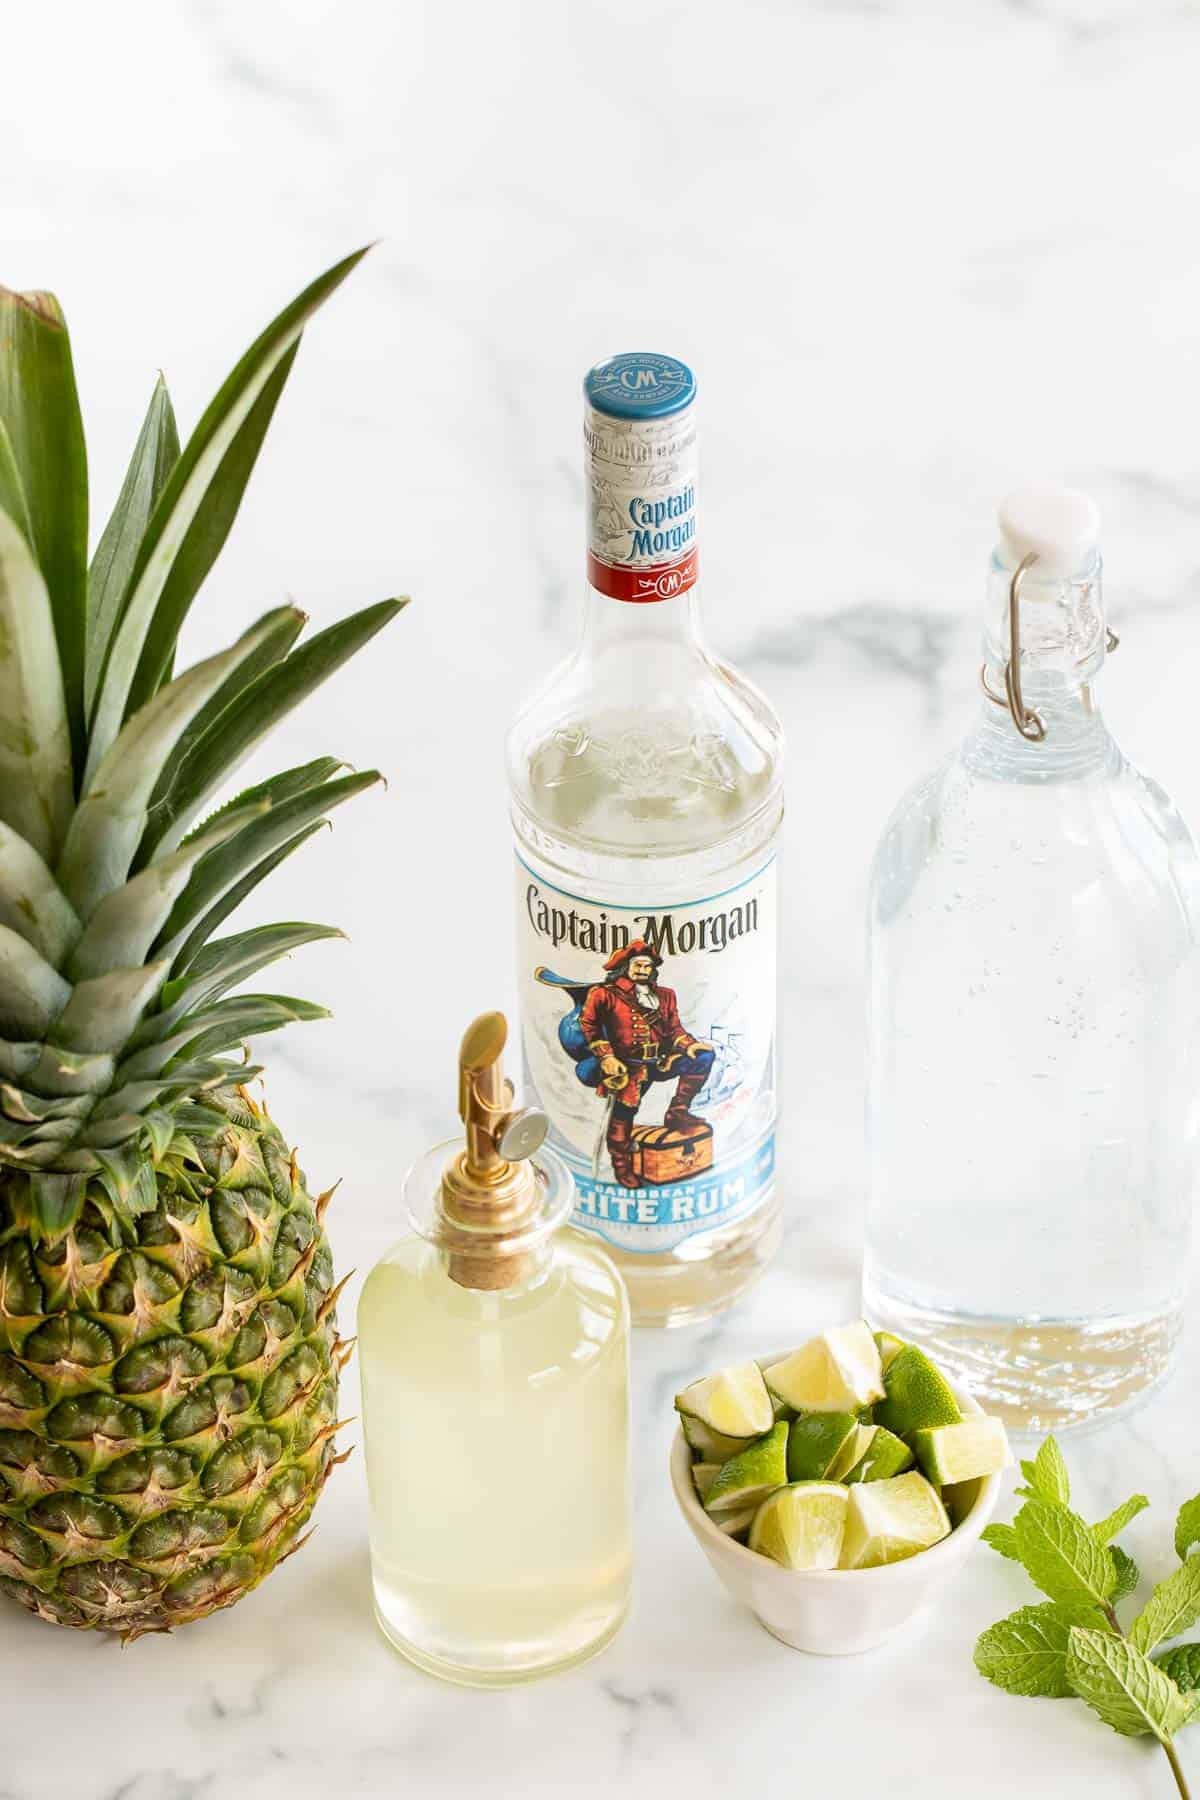 pineapple mojito ingredients displayed on marble surface